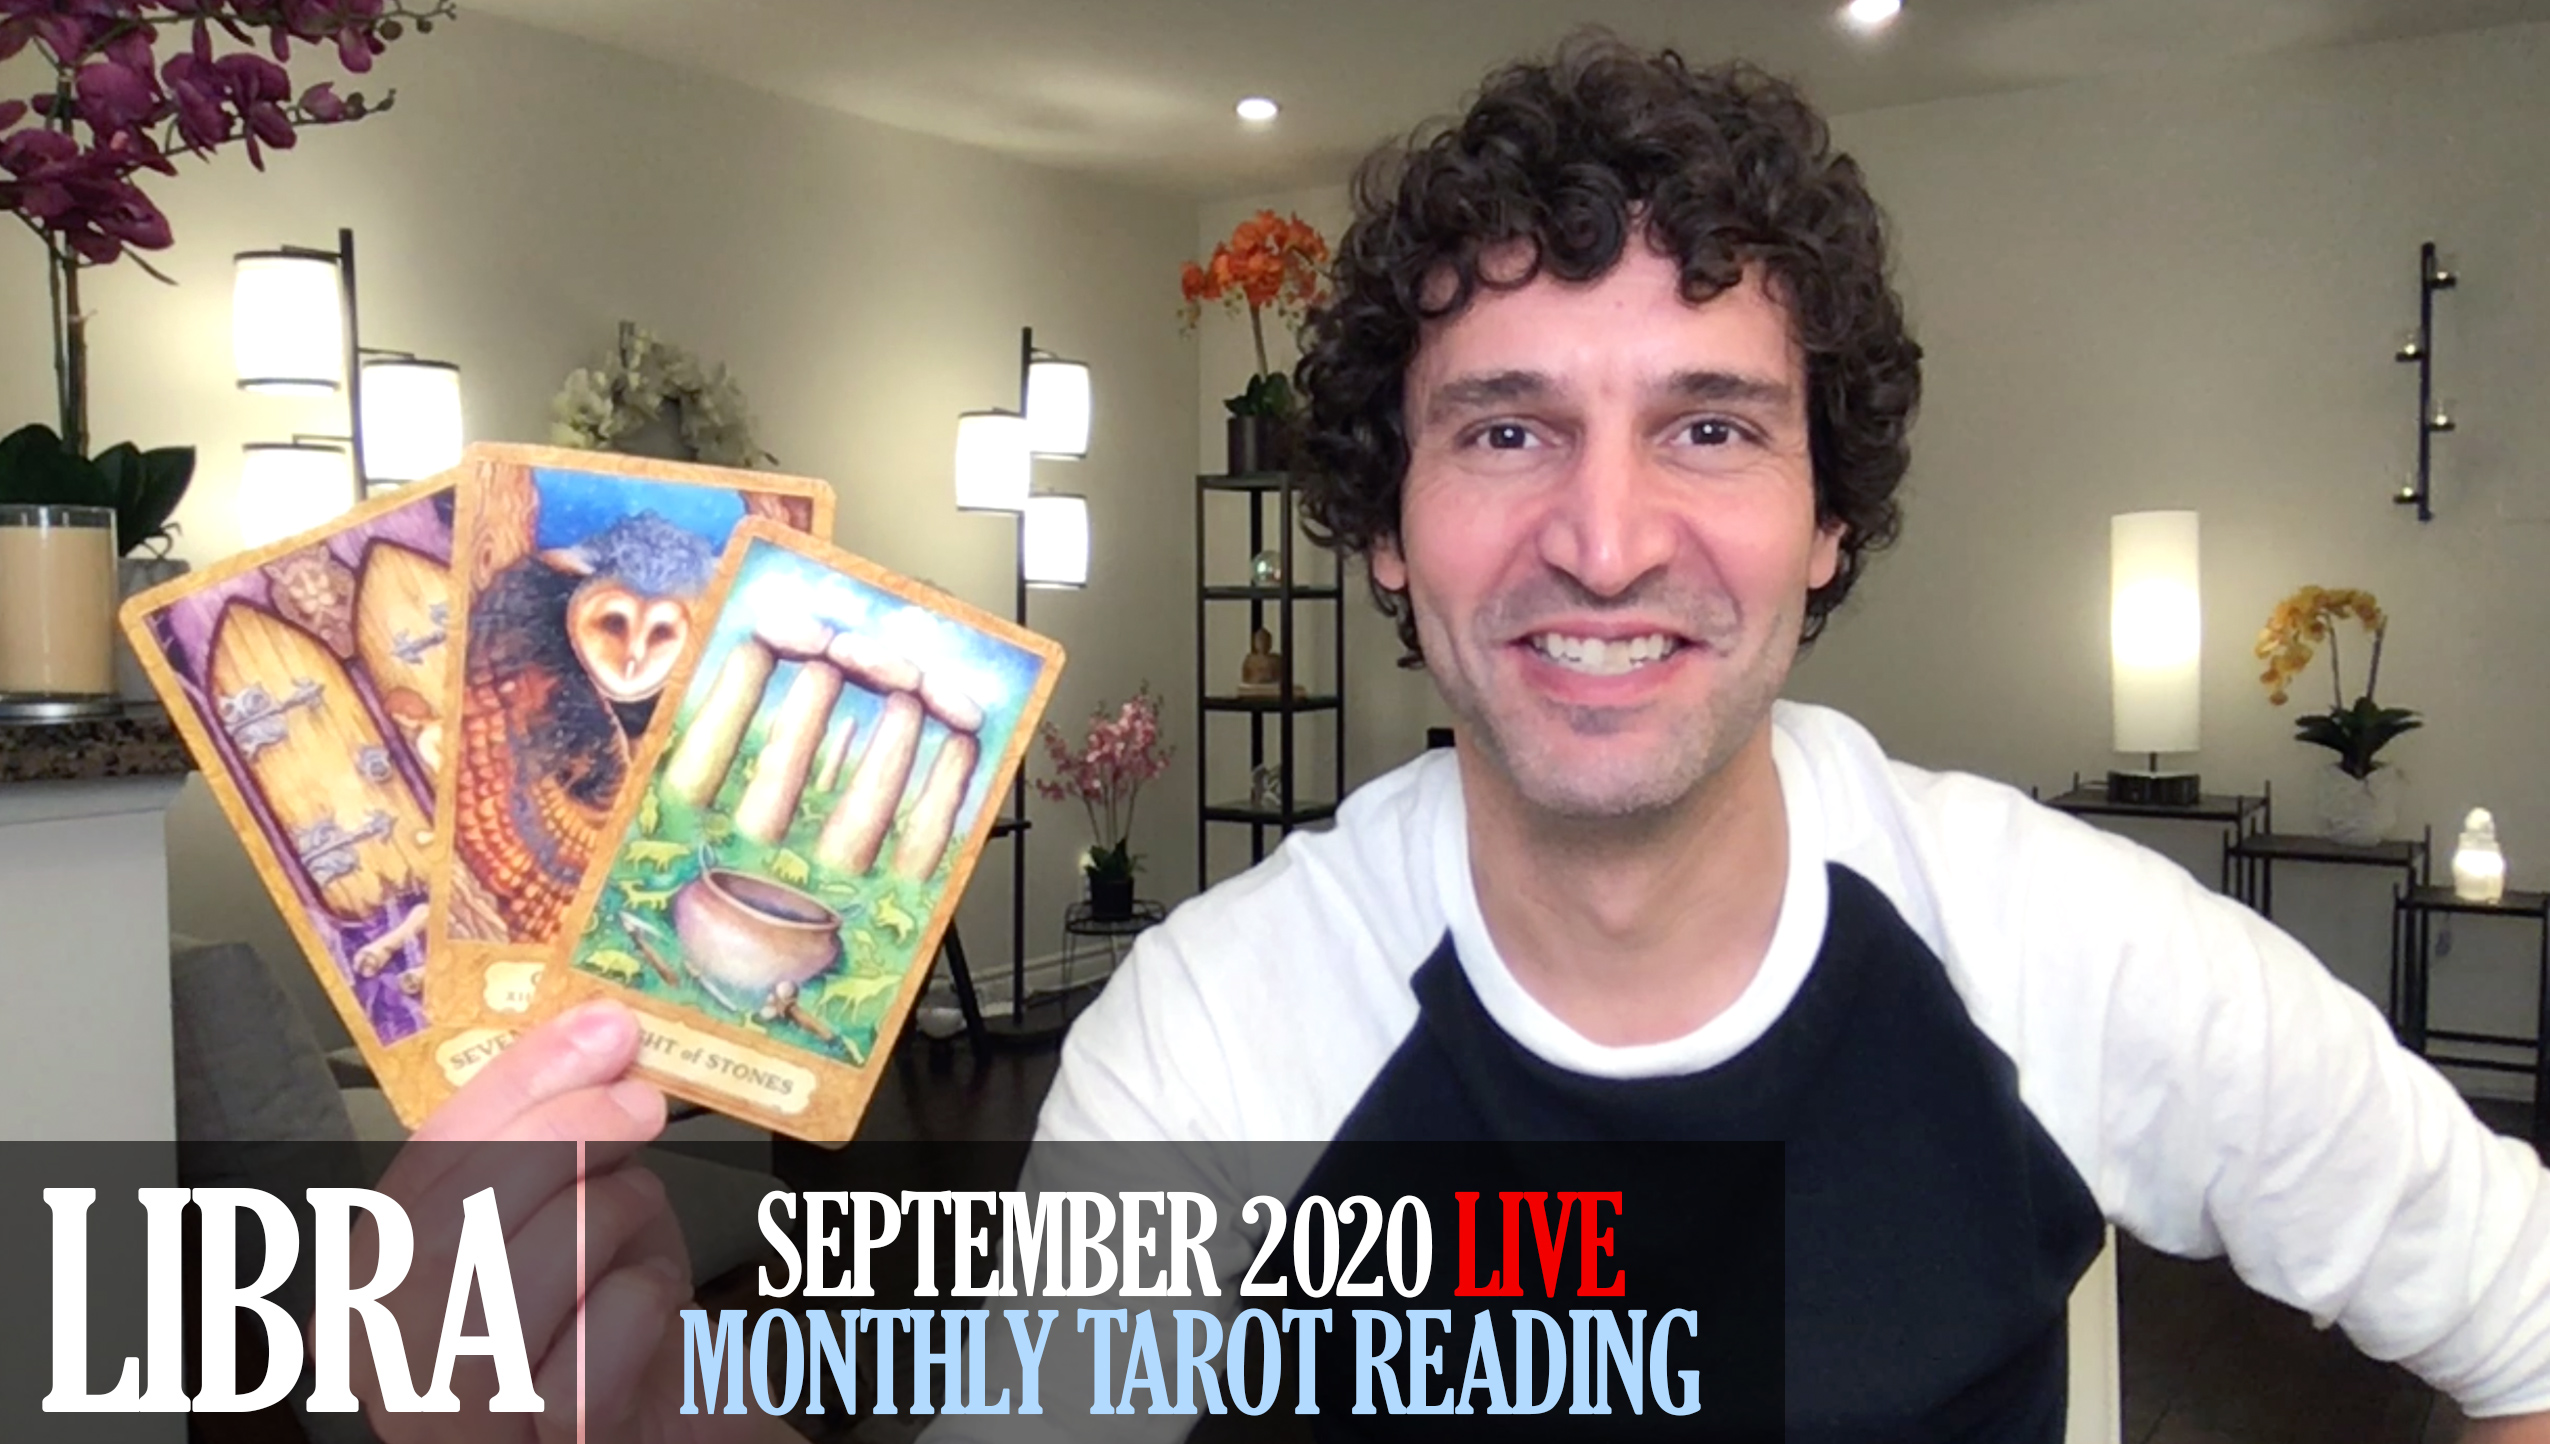 Libra September 2020 Tarot Reading